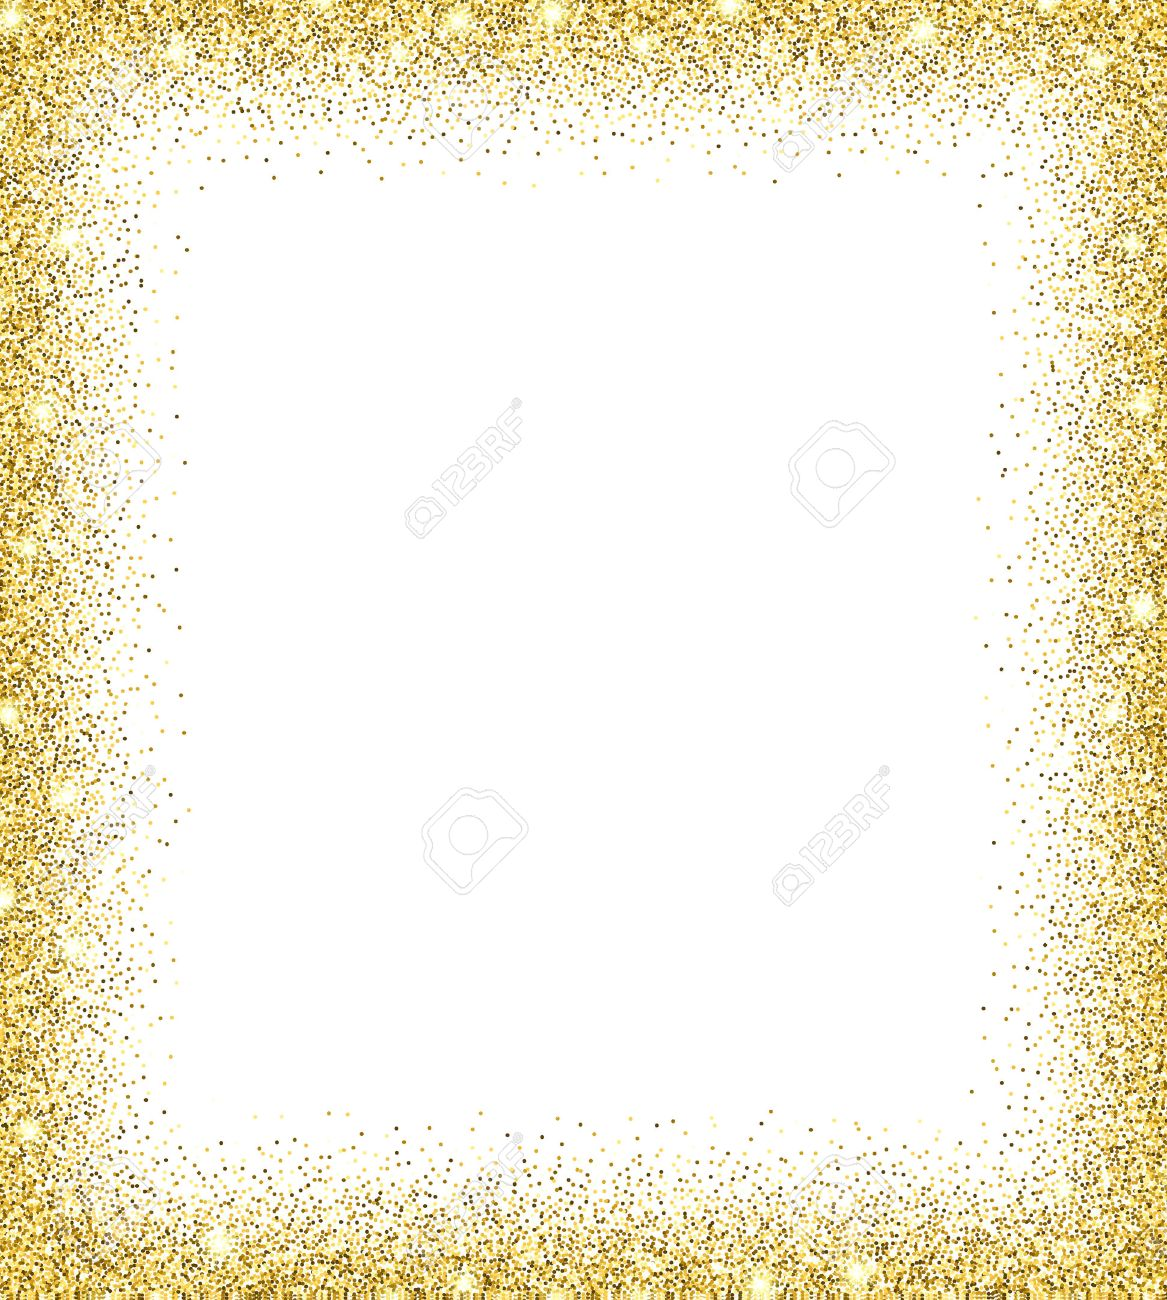 Gold glitter background. Gold sparkles on white background. Creative invitation for party, holiday, wedding, birthday. Trendy modern vector illustration - 50717941